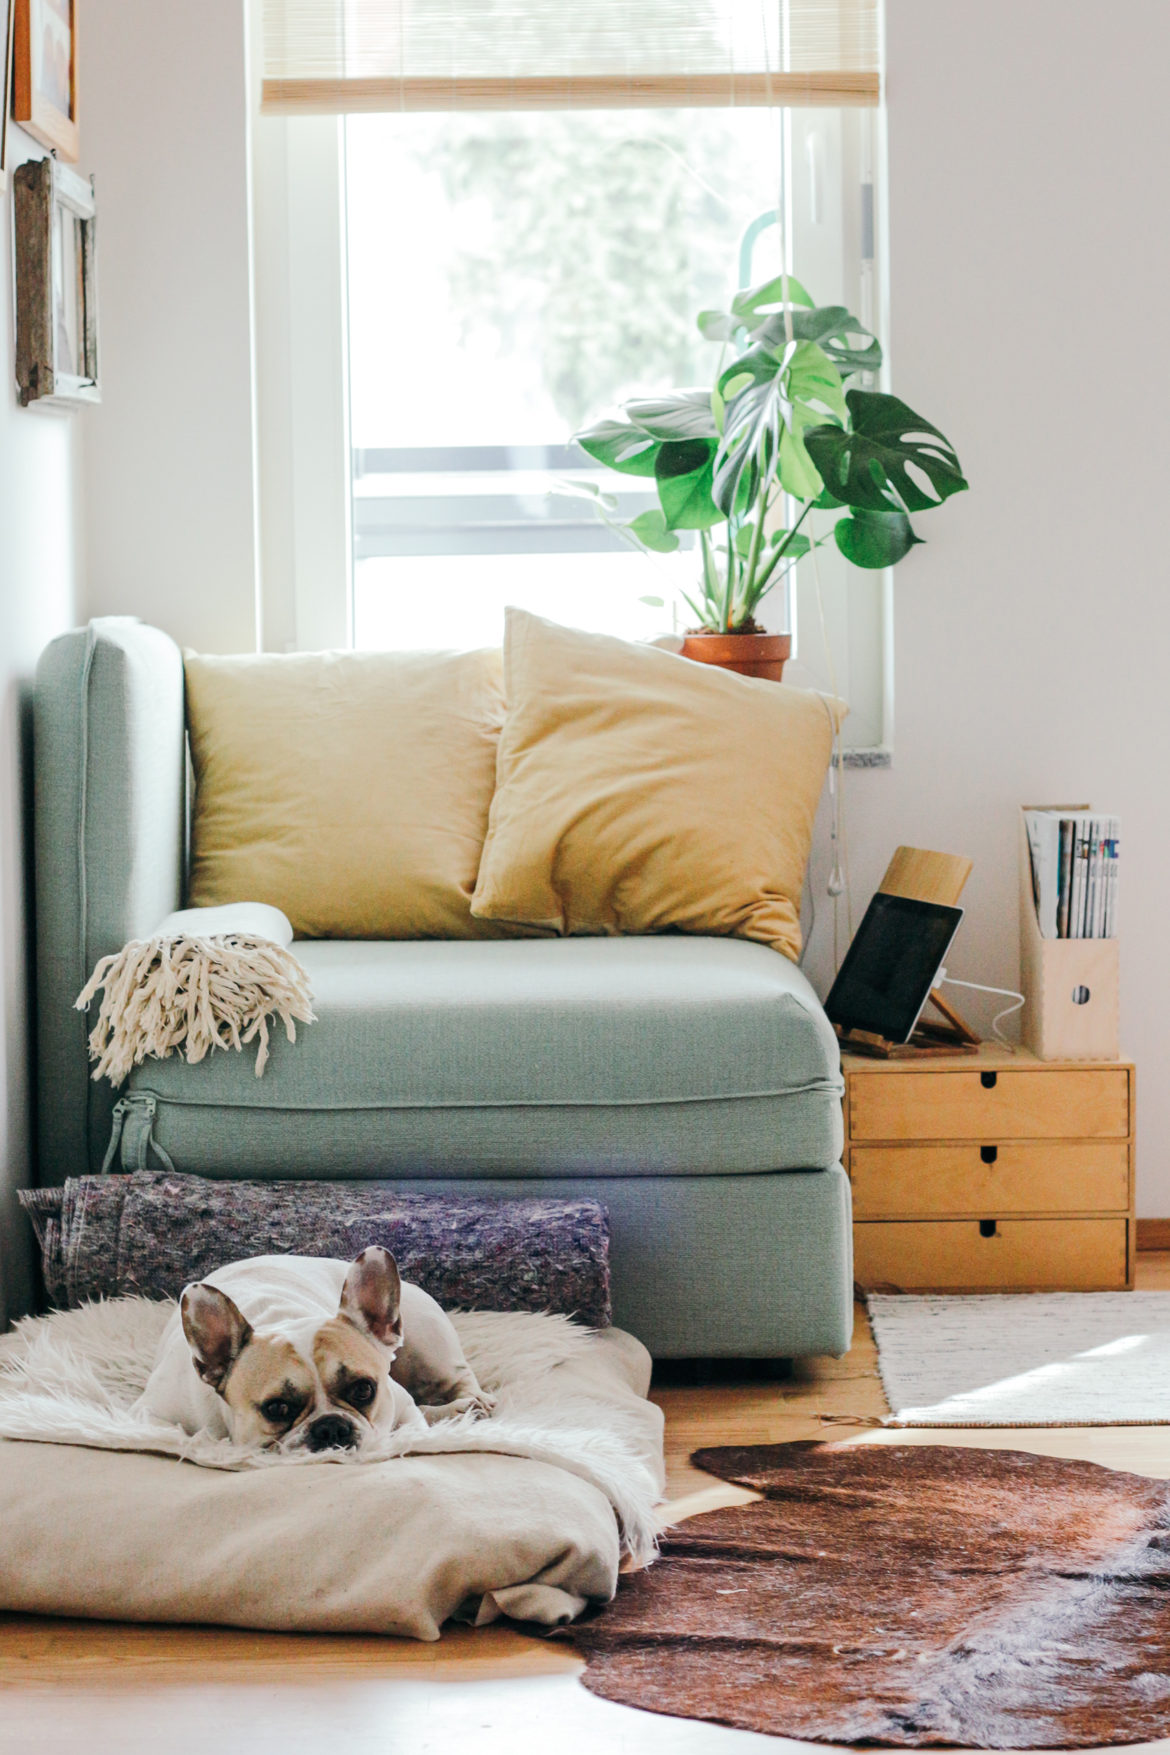 dog on sleep mat in front of couch in front of window